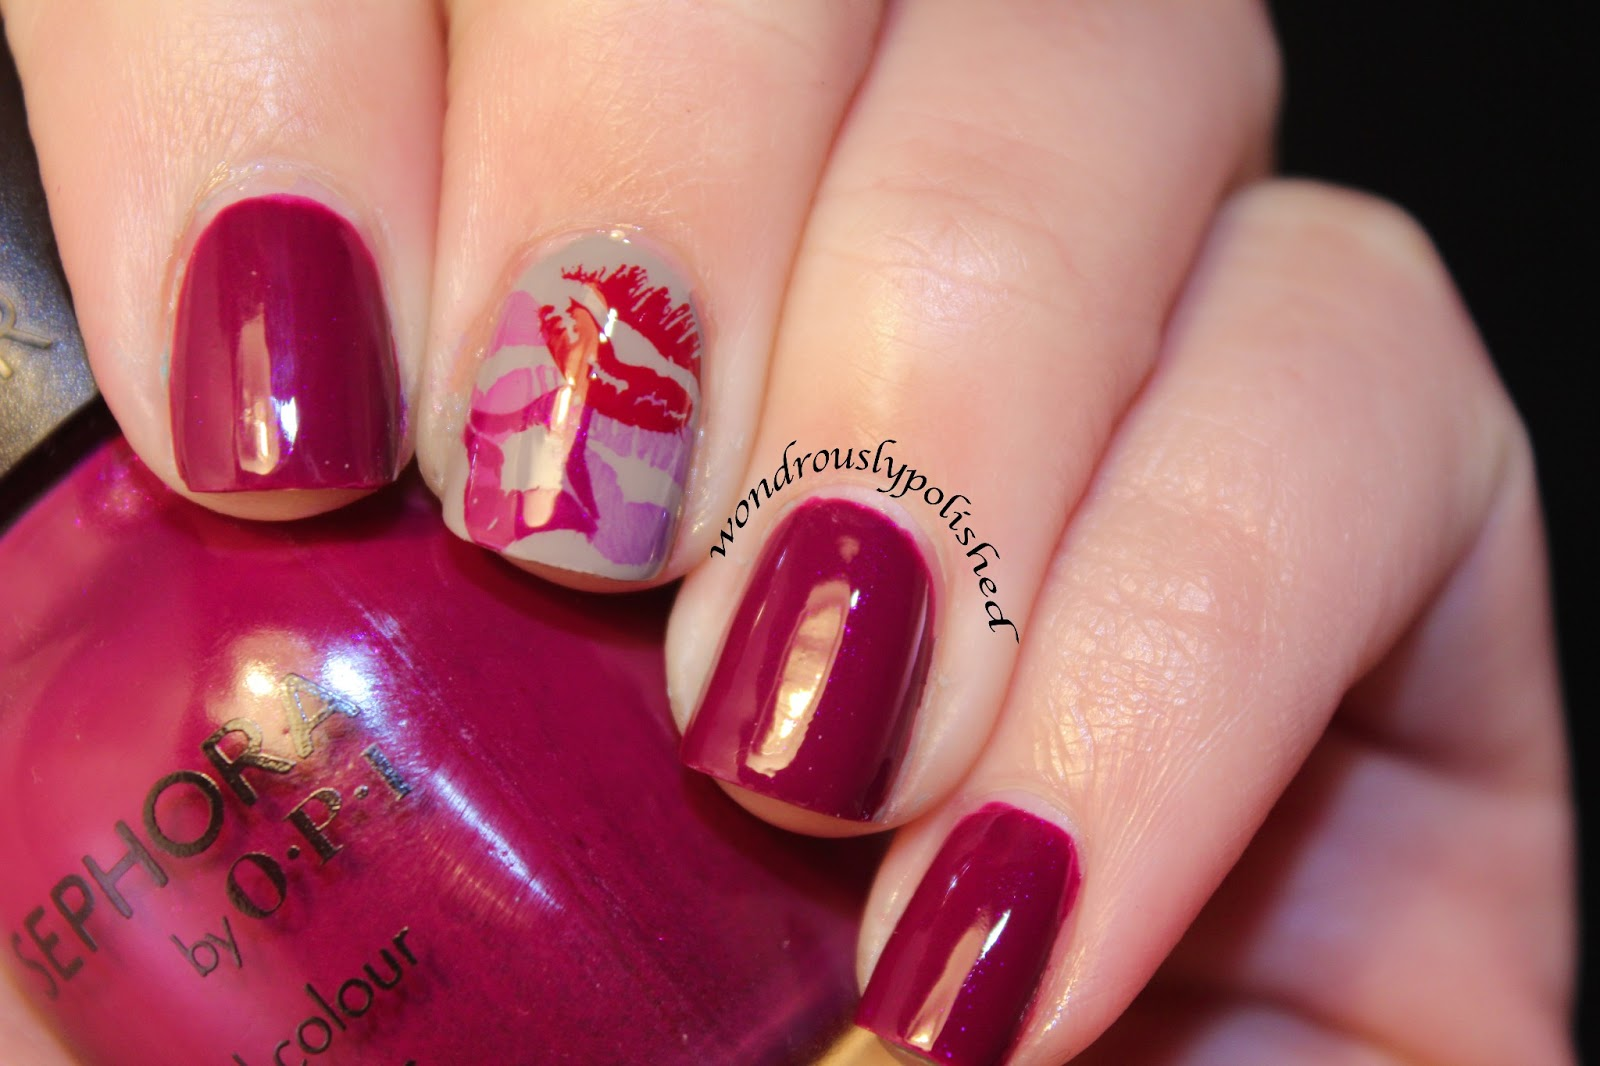 Wondrously Polished February Nail Art Challenge Day Smooch